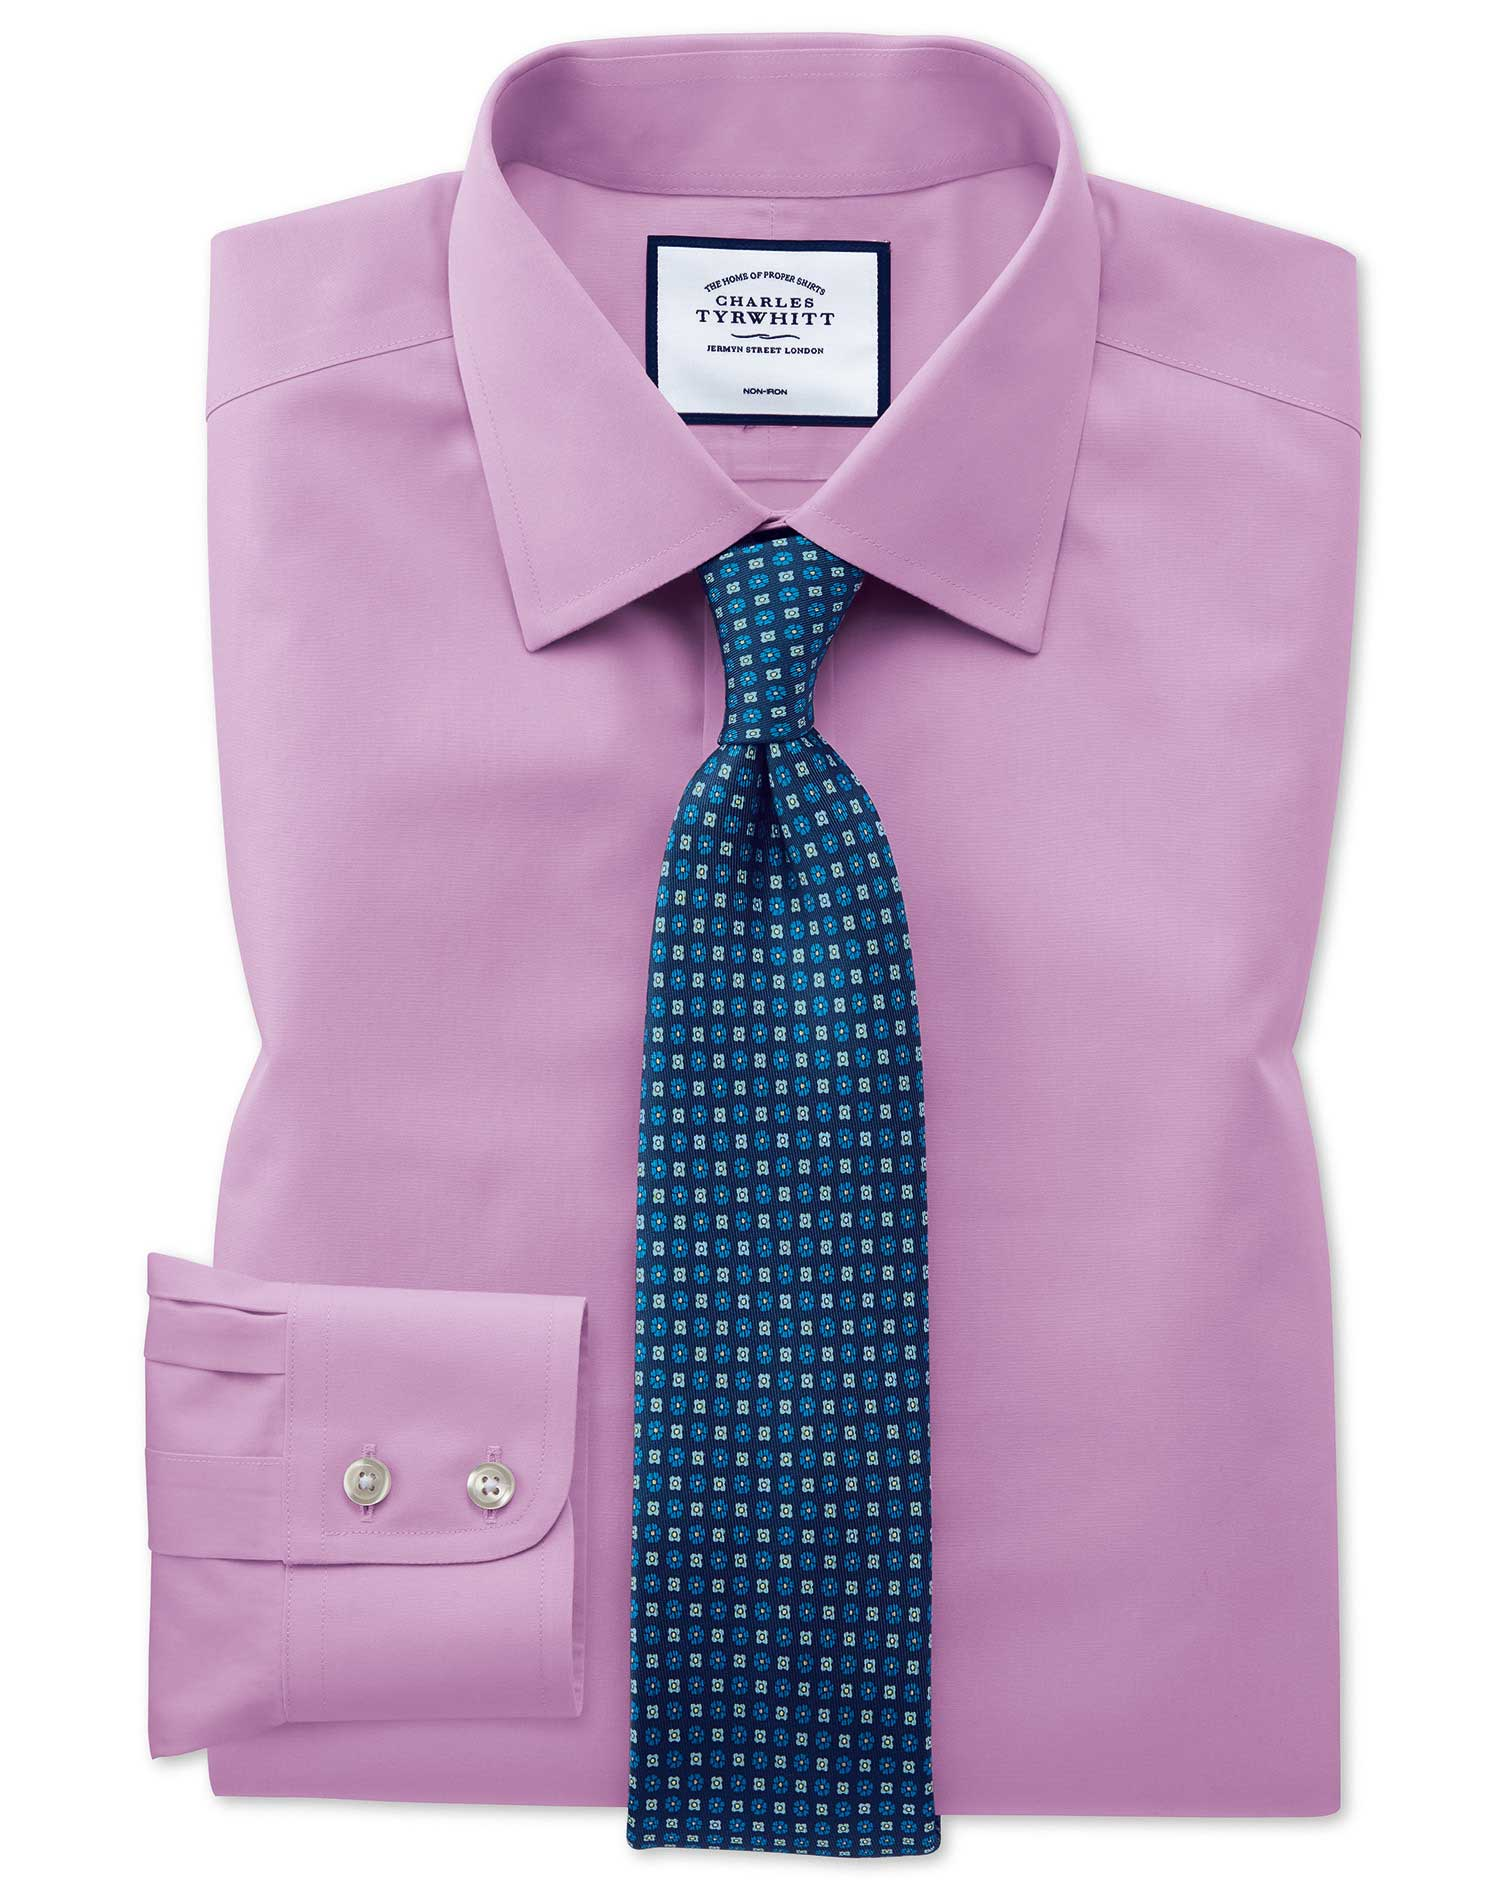 Slim Fit Violet Non-Iron Poplin Cotton Formal Shirt Double Cuff Size 15.5/35 by Charles Tyrwhitt